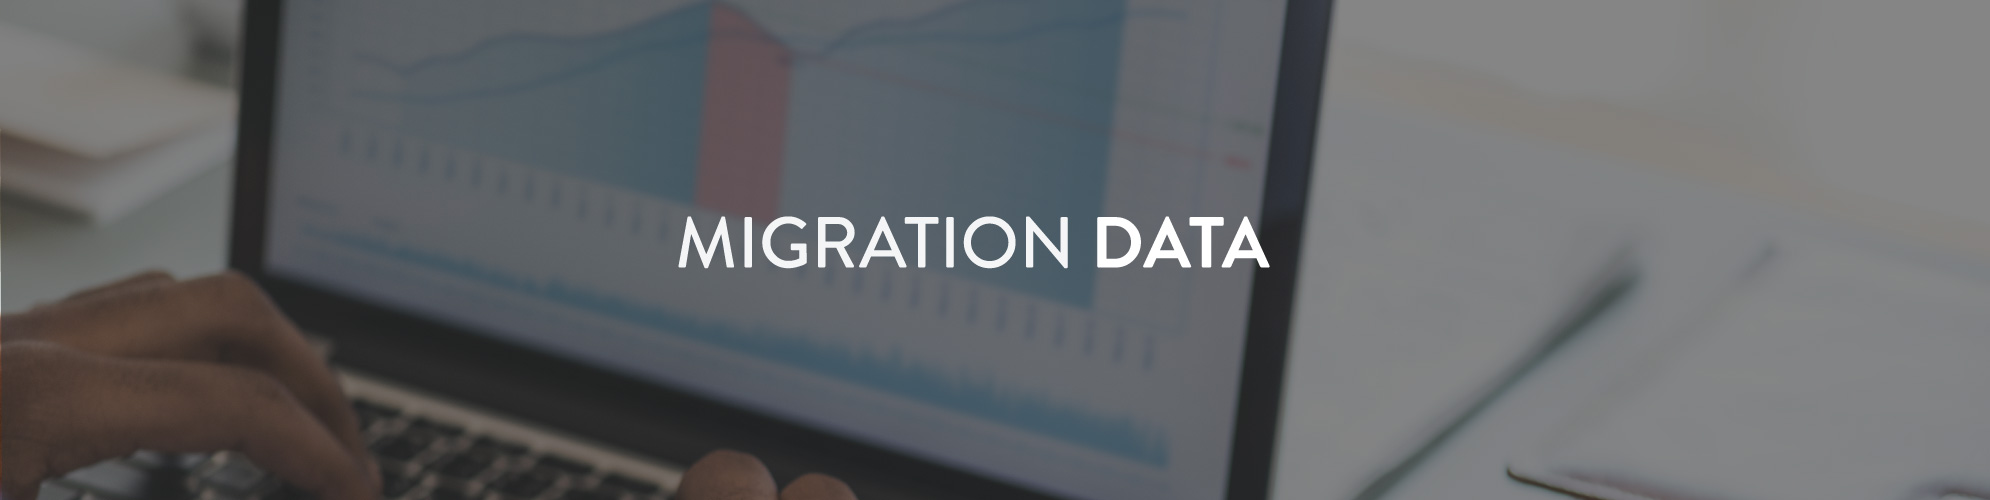 Migration data dashboard